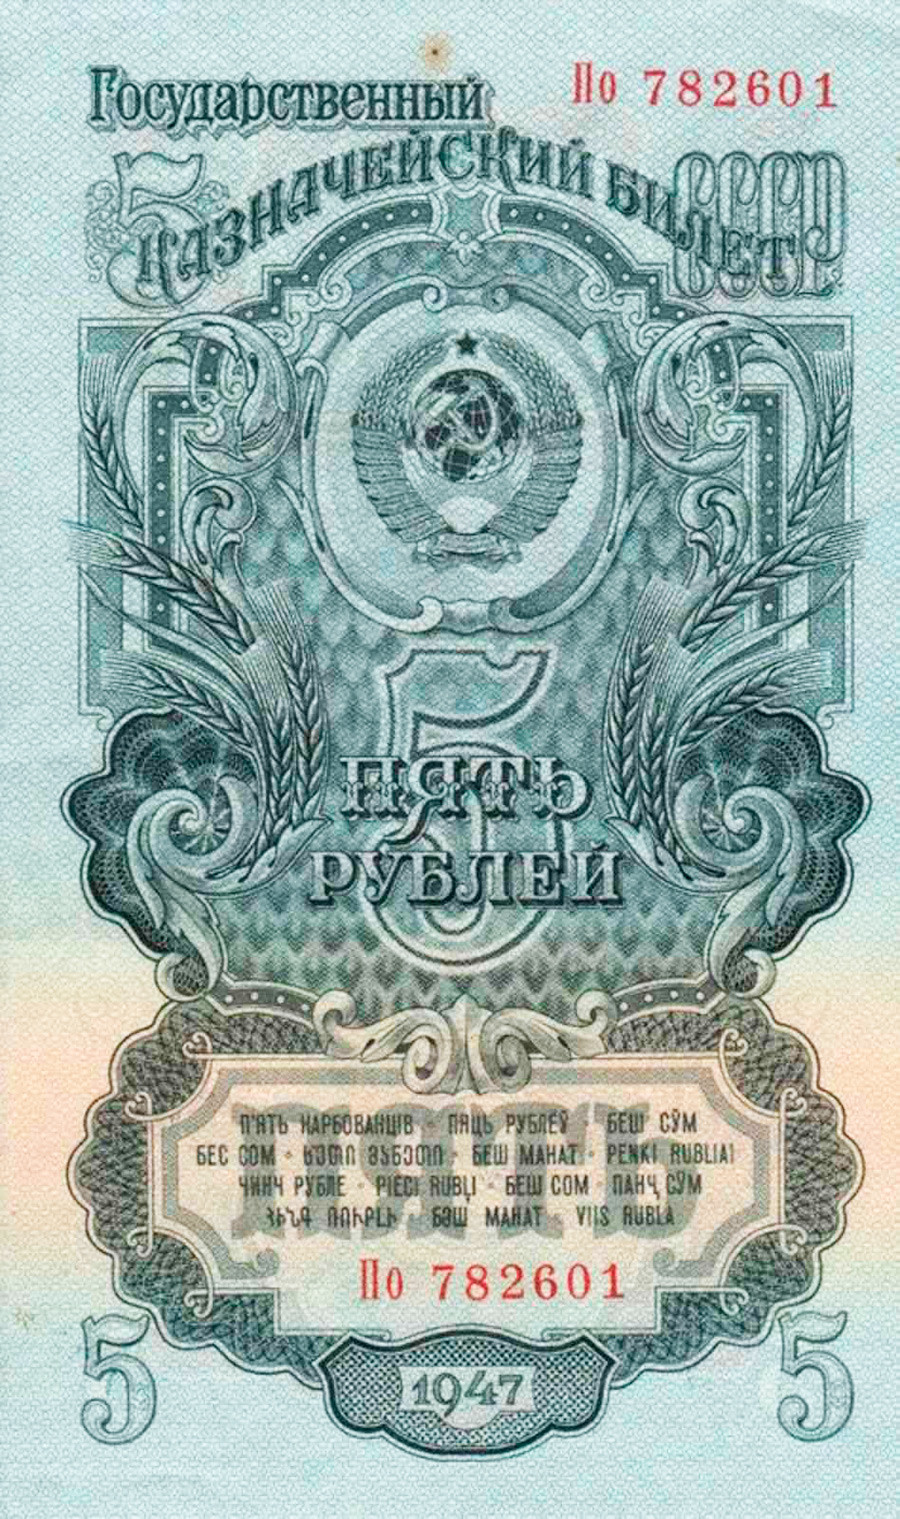 A 5-ruble banknote (1947)